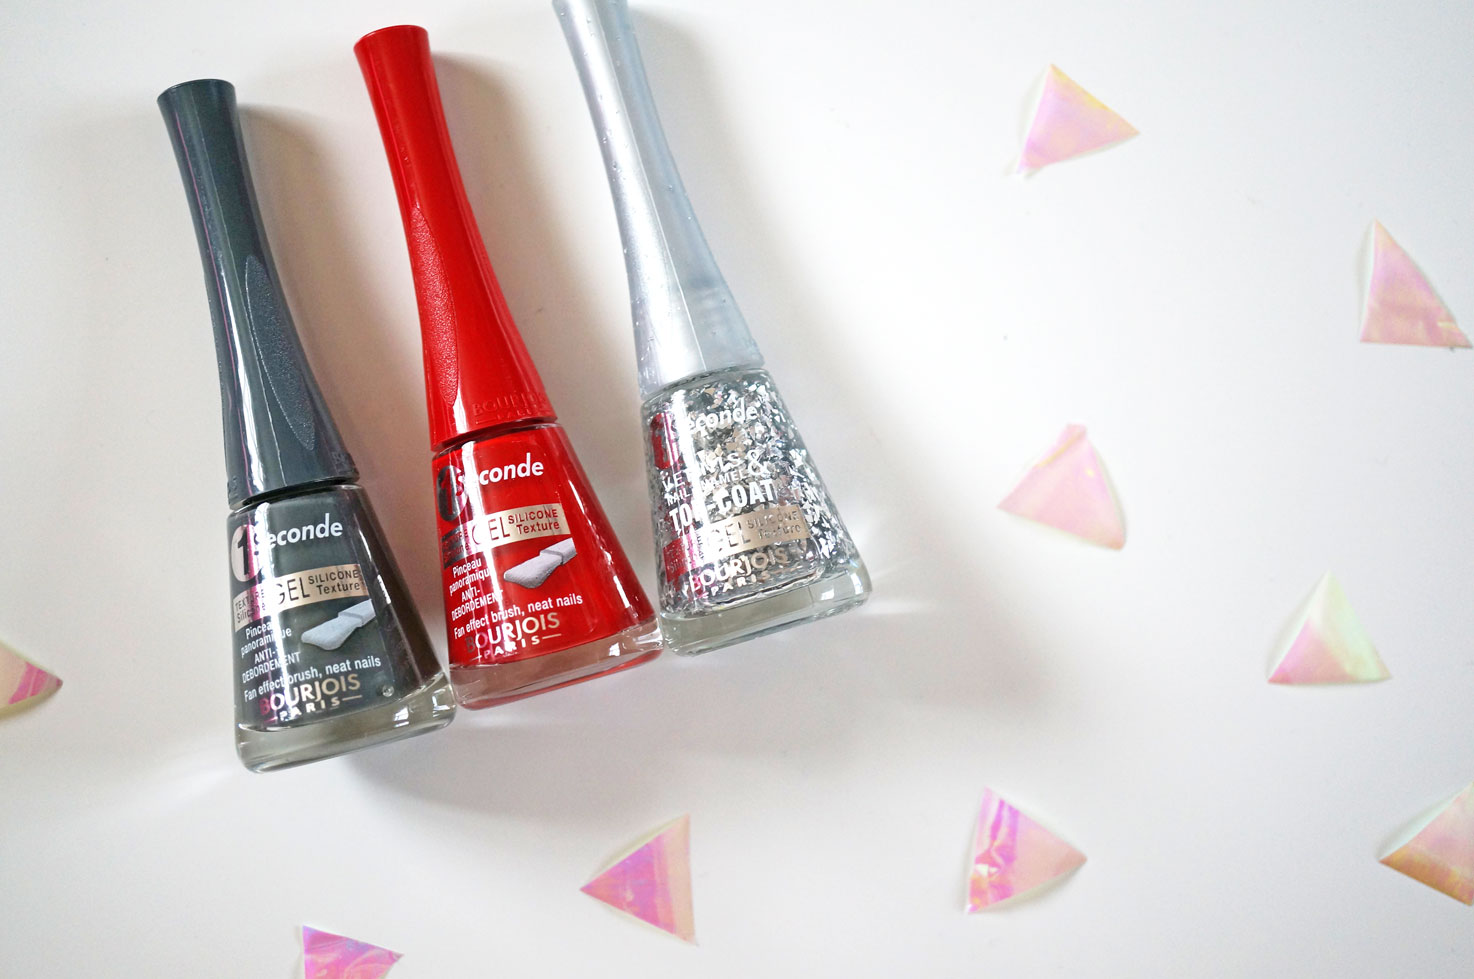 NEW Bourjois Winter Nail Polish Shades! - Thou Shalt Not Covet...